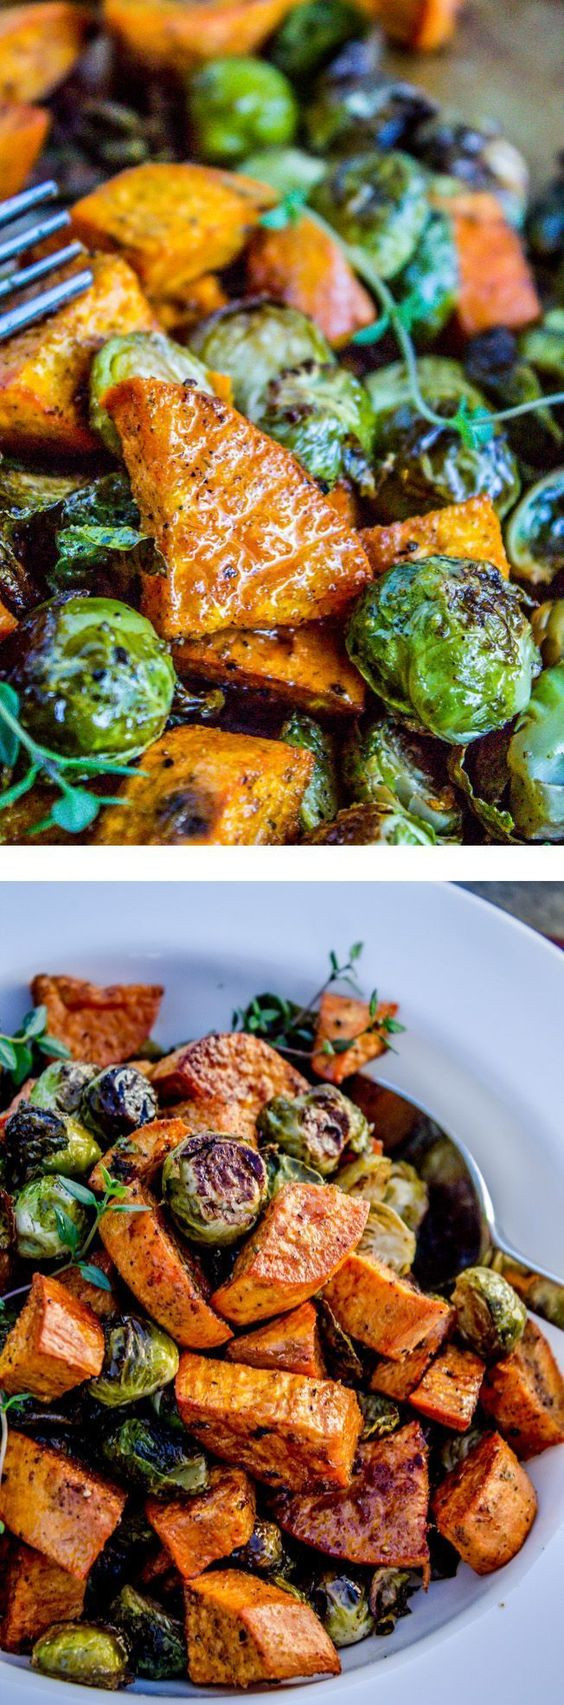 Thanksgiving Roasted Vegetable Side Dishes  50 Best Thanksgiving Ve able Side Dishes 2017